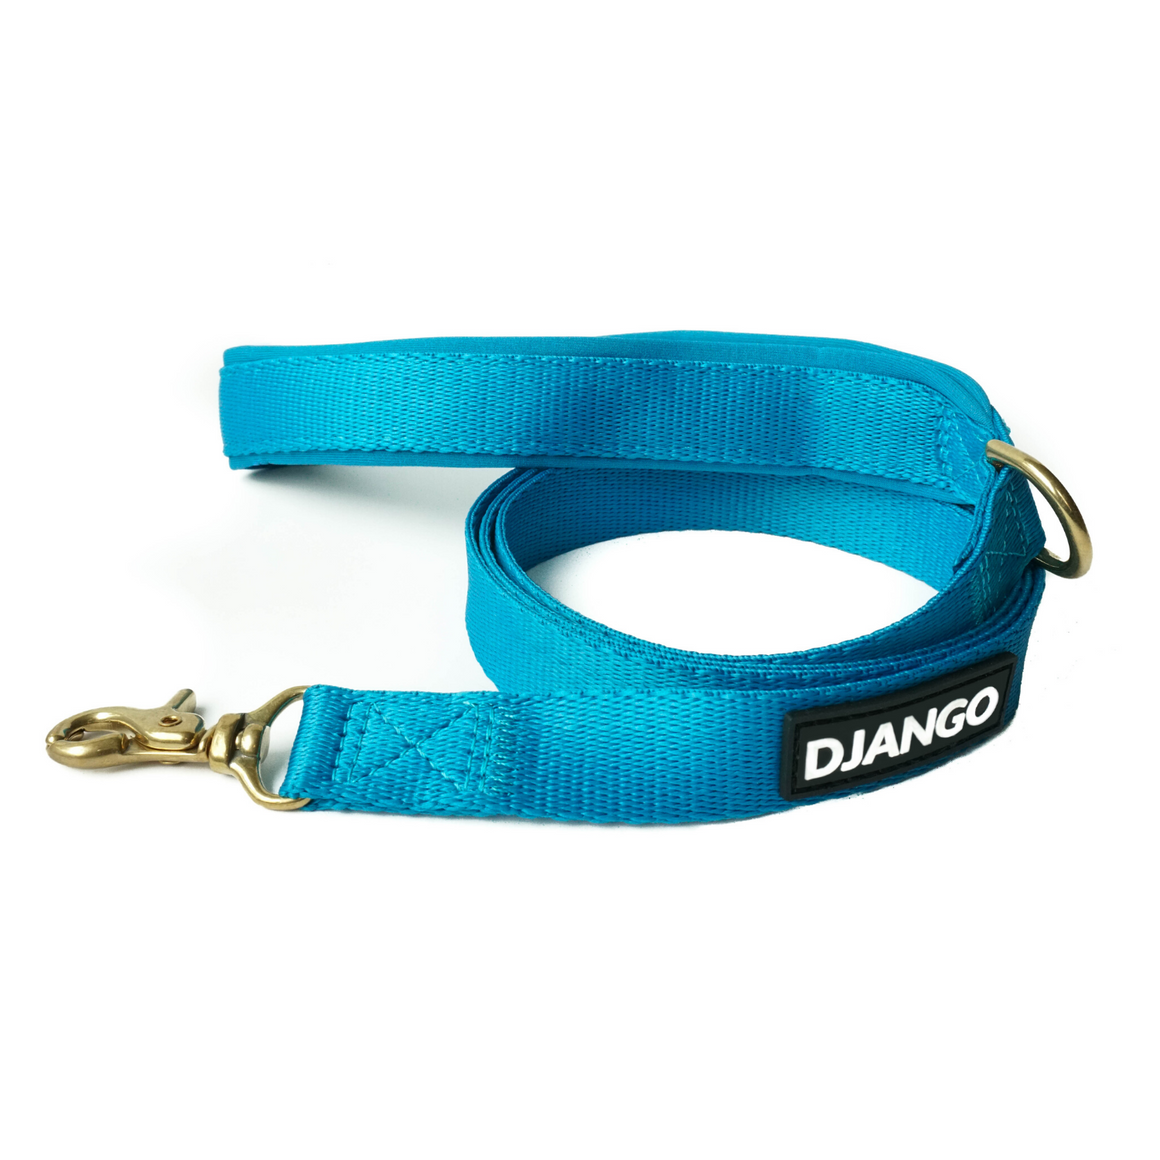 DJANGO Adventure Dog Leash in Pacific Blue – Strong, Comfortable, and Stylish Dog Leash with Solid Brass Hardware and Padded Handle - Designed for Outdoor Adventures and Everyday Use - djangobrand.com